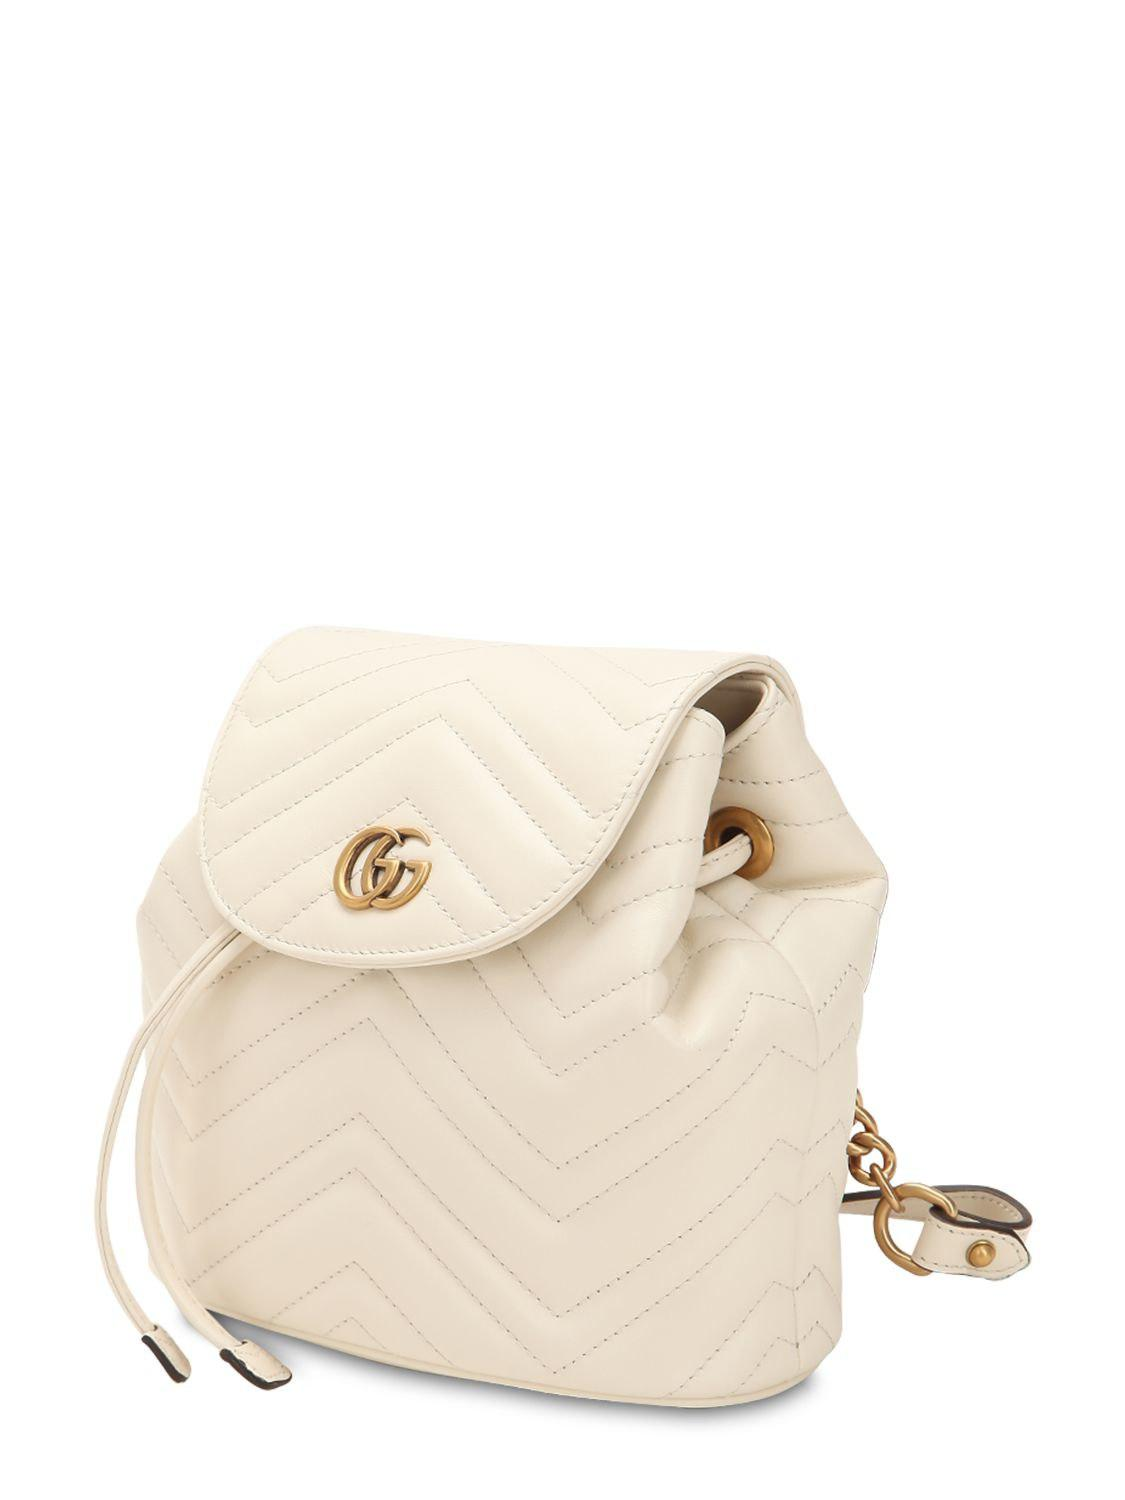 6becee80d735 ... Gg Marmont Leather Backpack - Lyst. View fullscreen